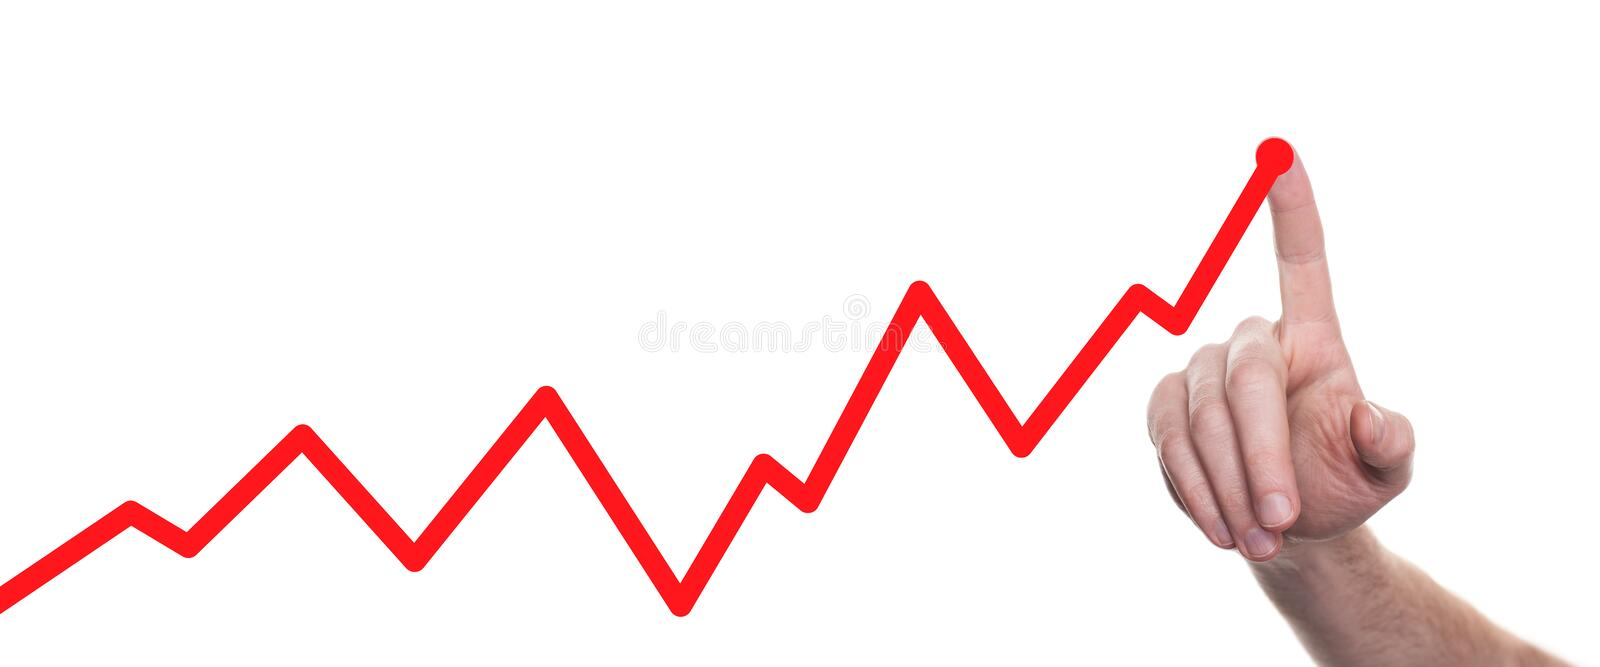 Hands drawing line chart and business strategy. Success concept royalty free stock photography